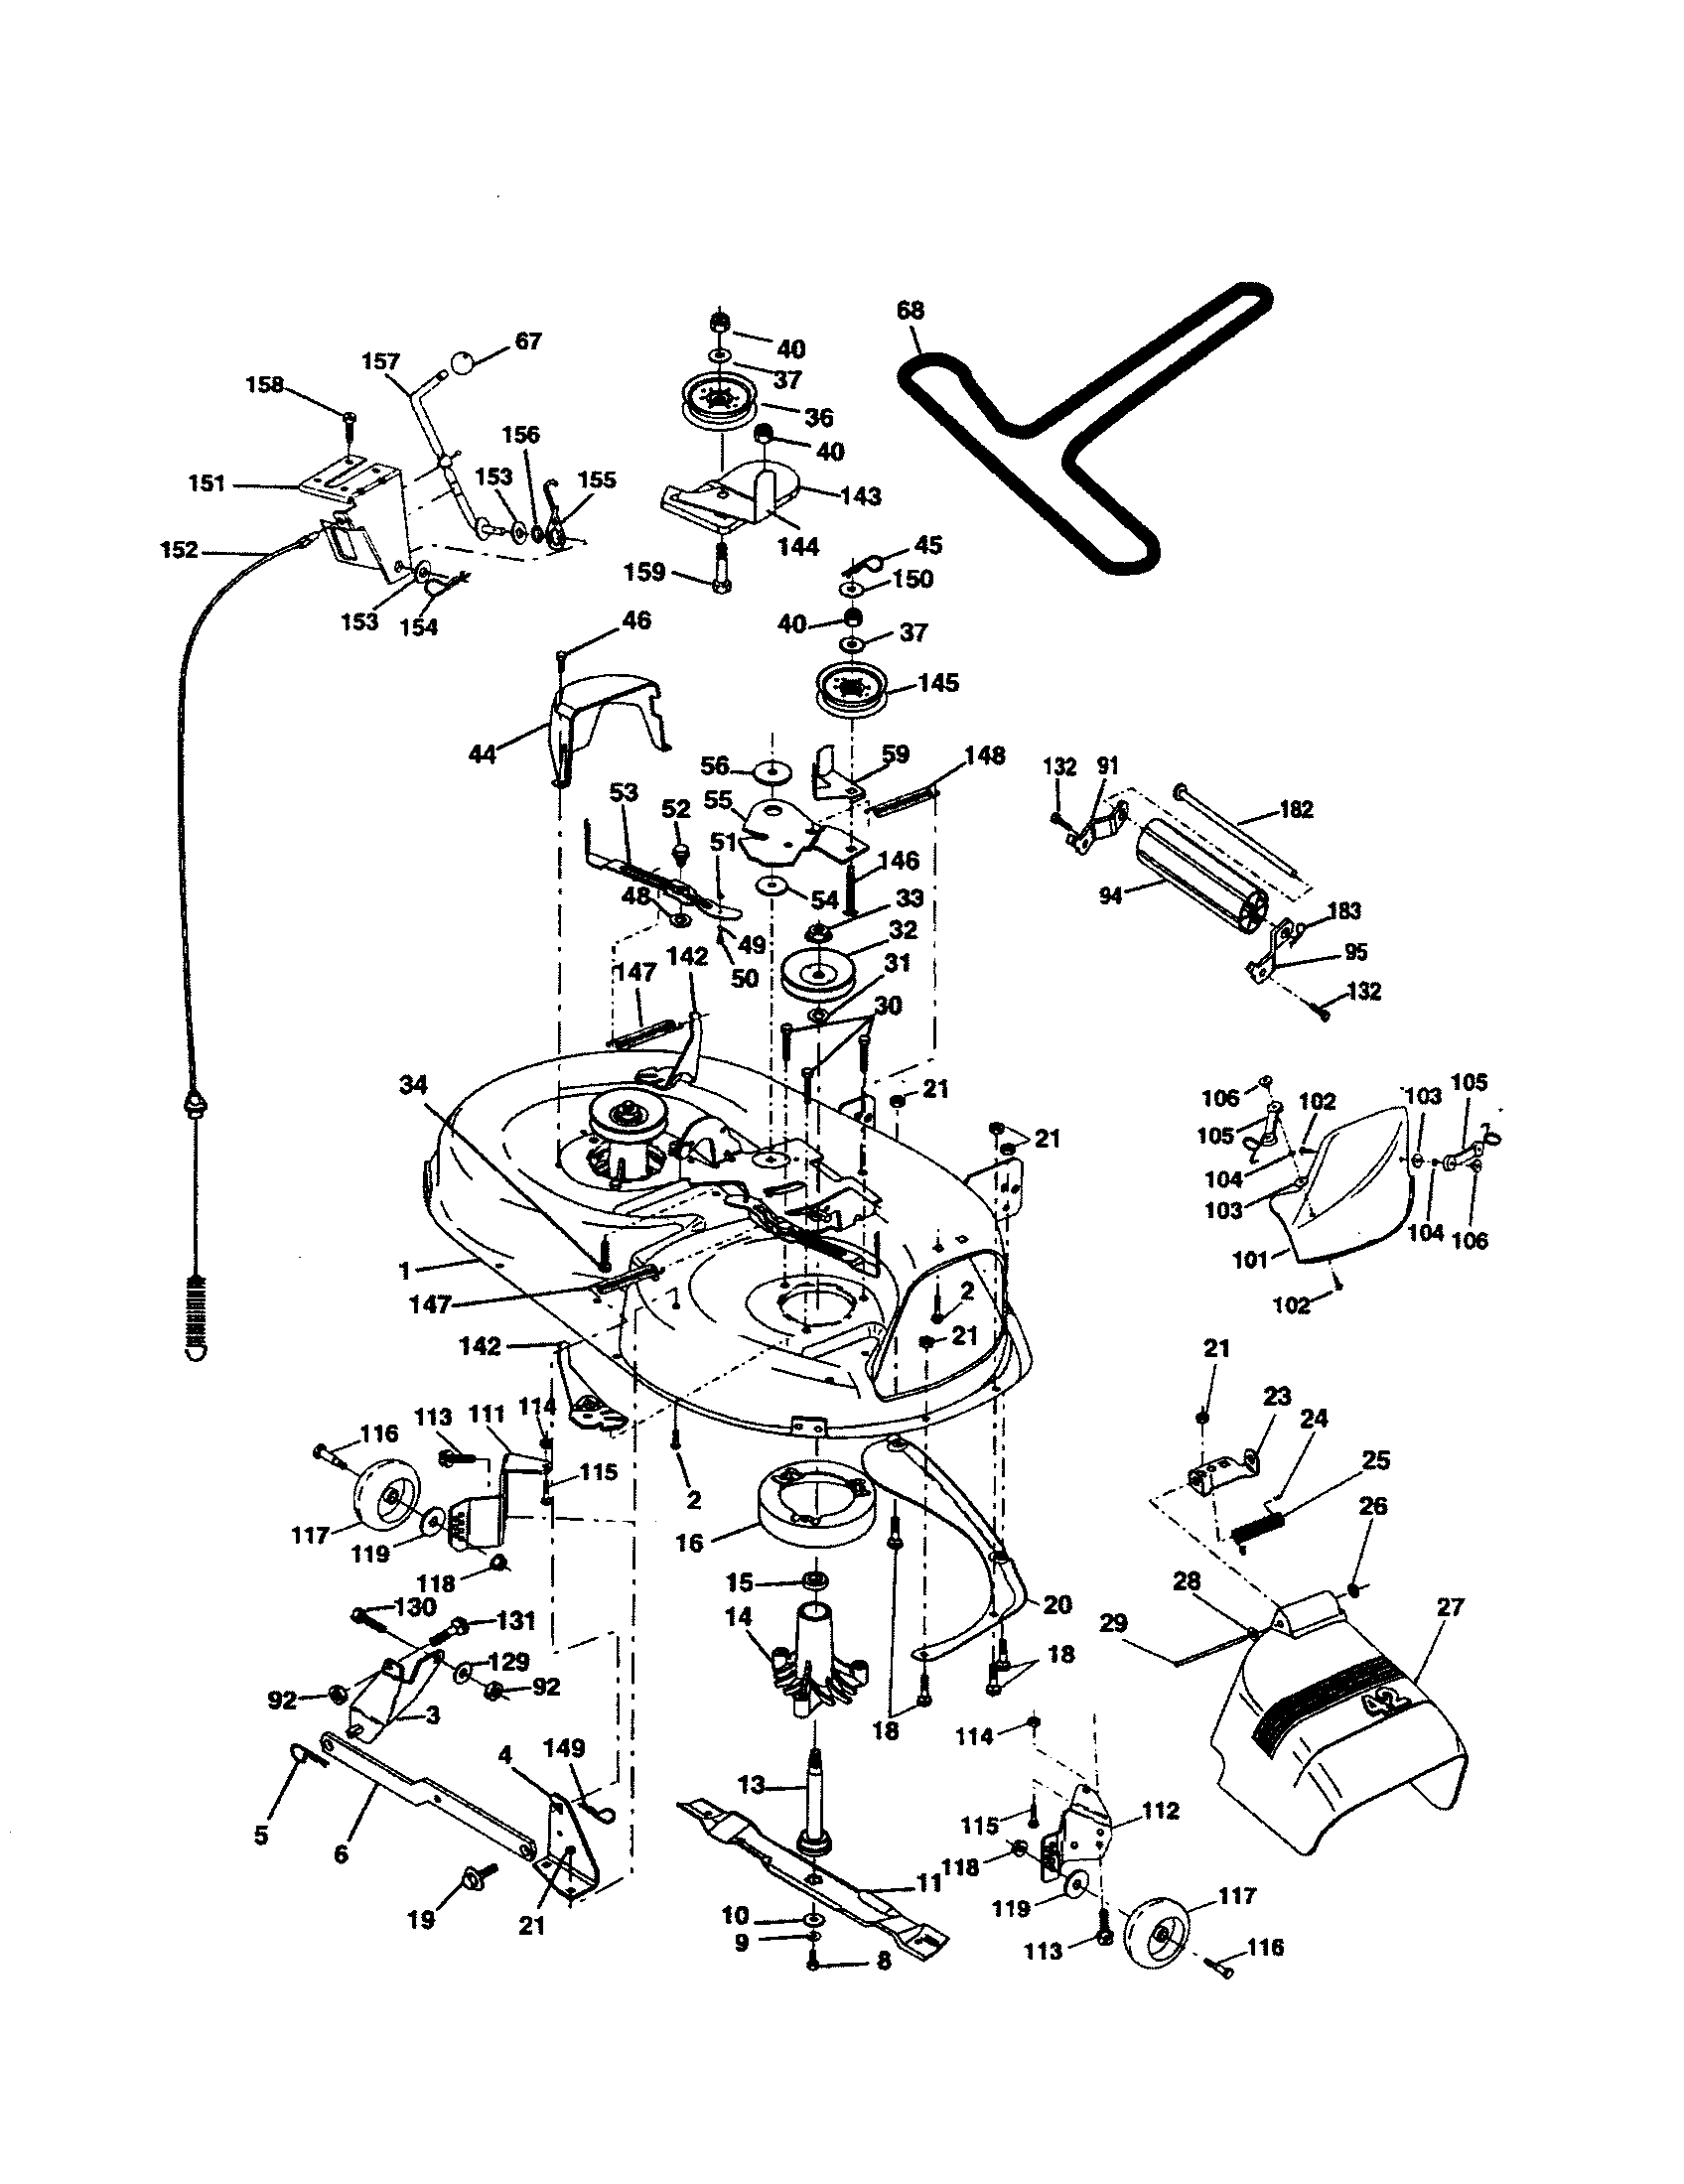 Poulan Pro Riding Mower Wiring Diagram